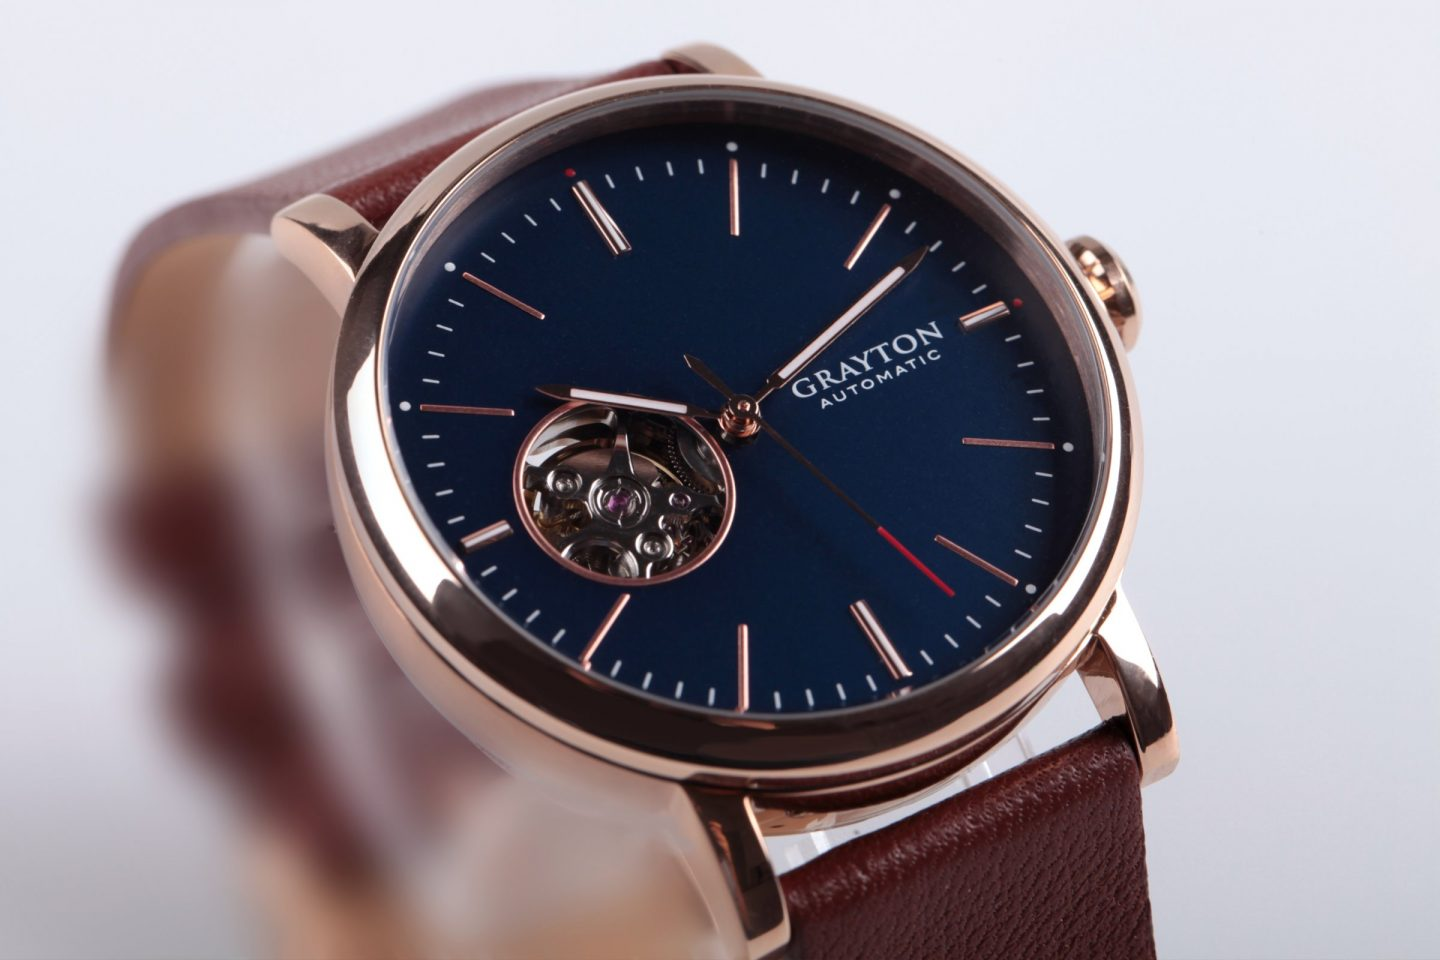 Grayton announces first mechanical watch with smart features